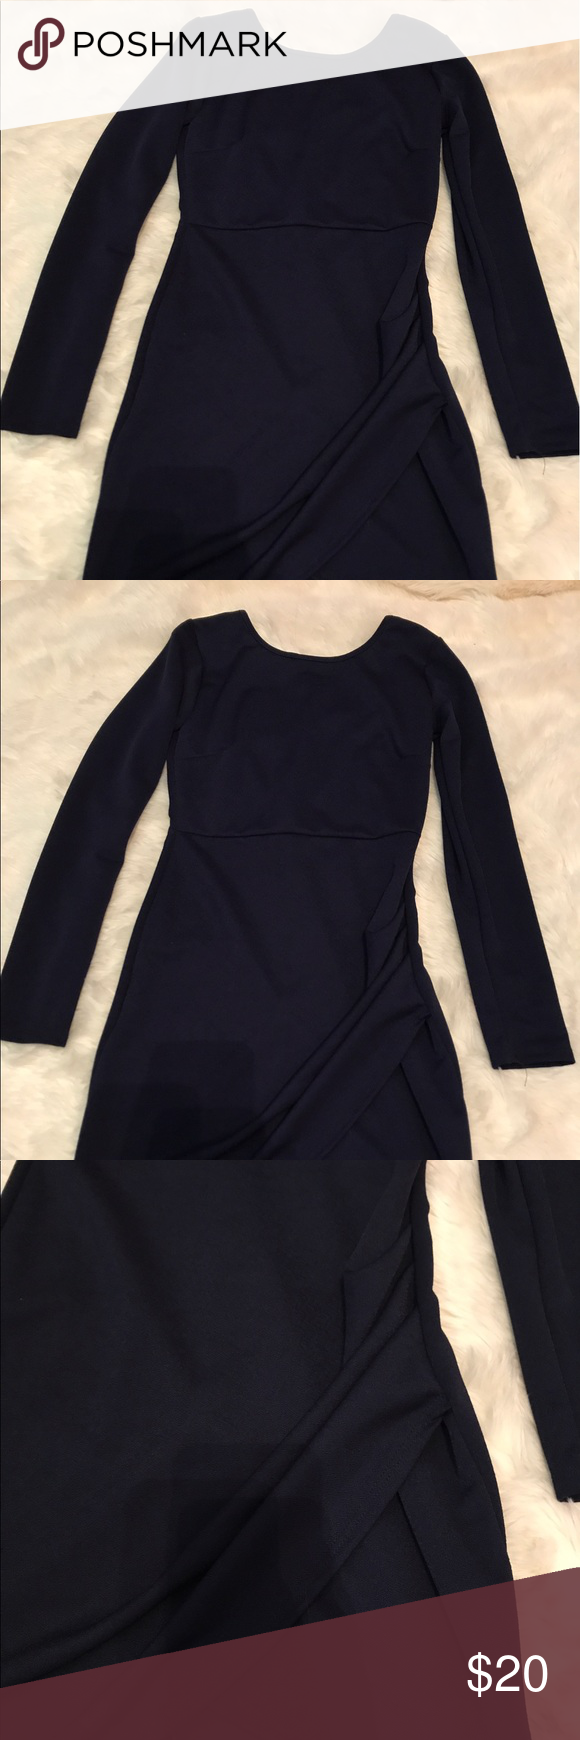 Windsor navy blue dress navy blue dresses windsor fc and blue